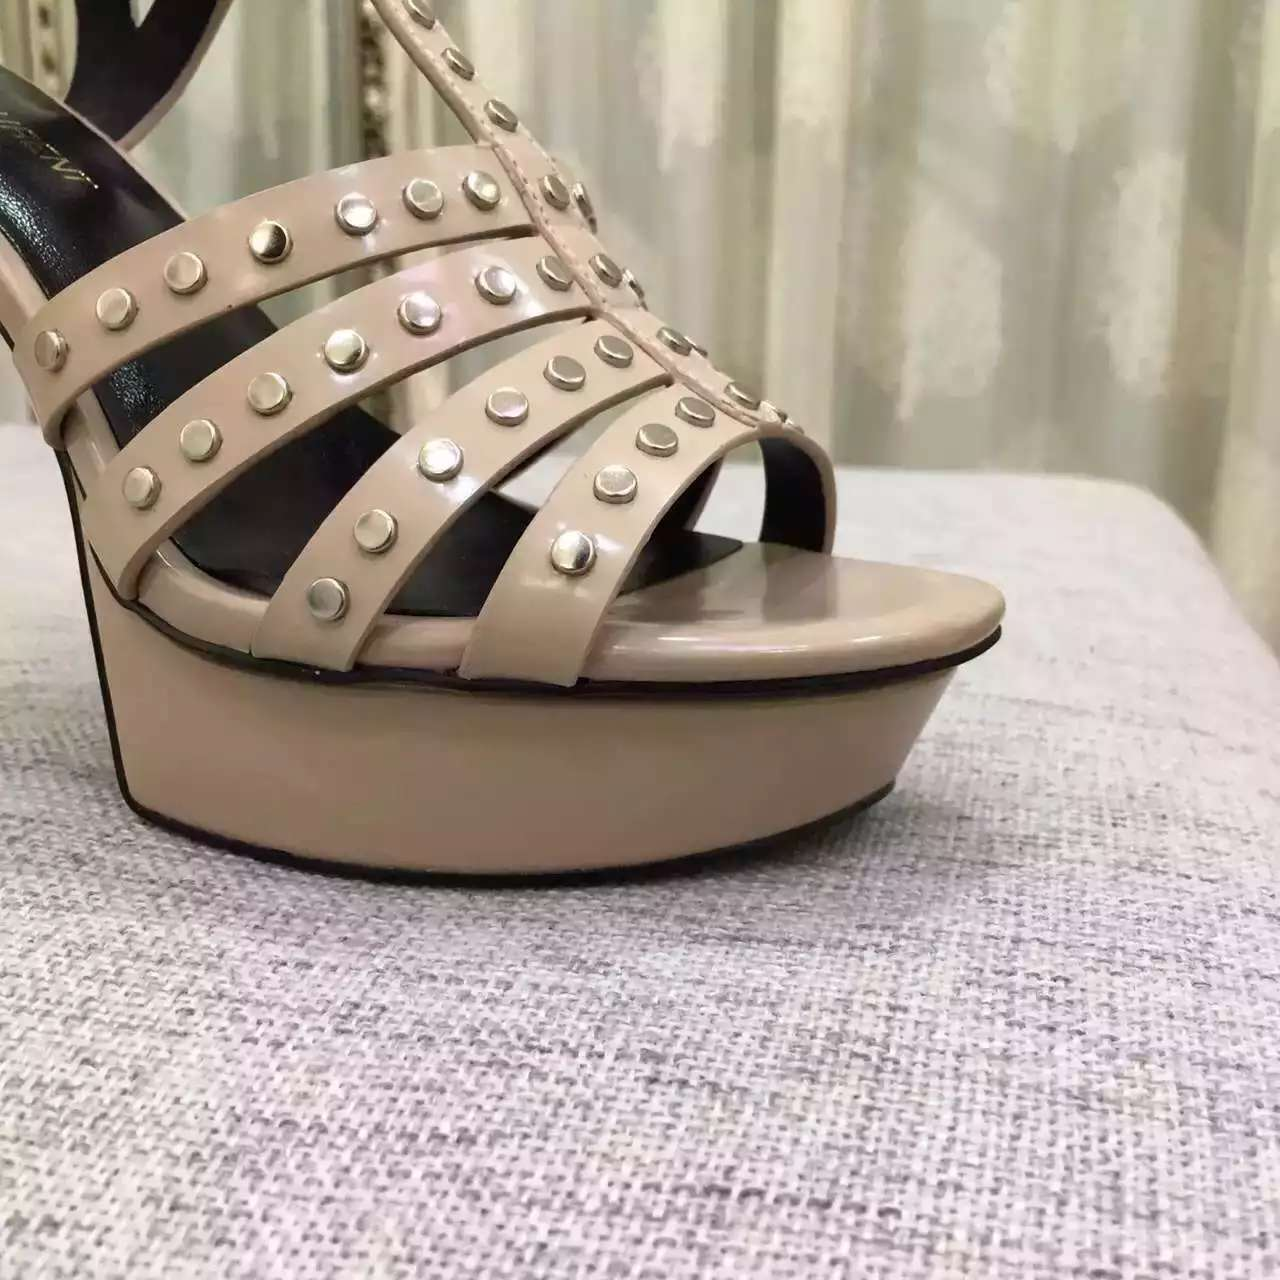 2016 Saint Laurent Shoes Cheap Sale-Saint Laurent Classic TRIBUTE 105 Studded Sandal in Powder Leather and Nickel